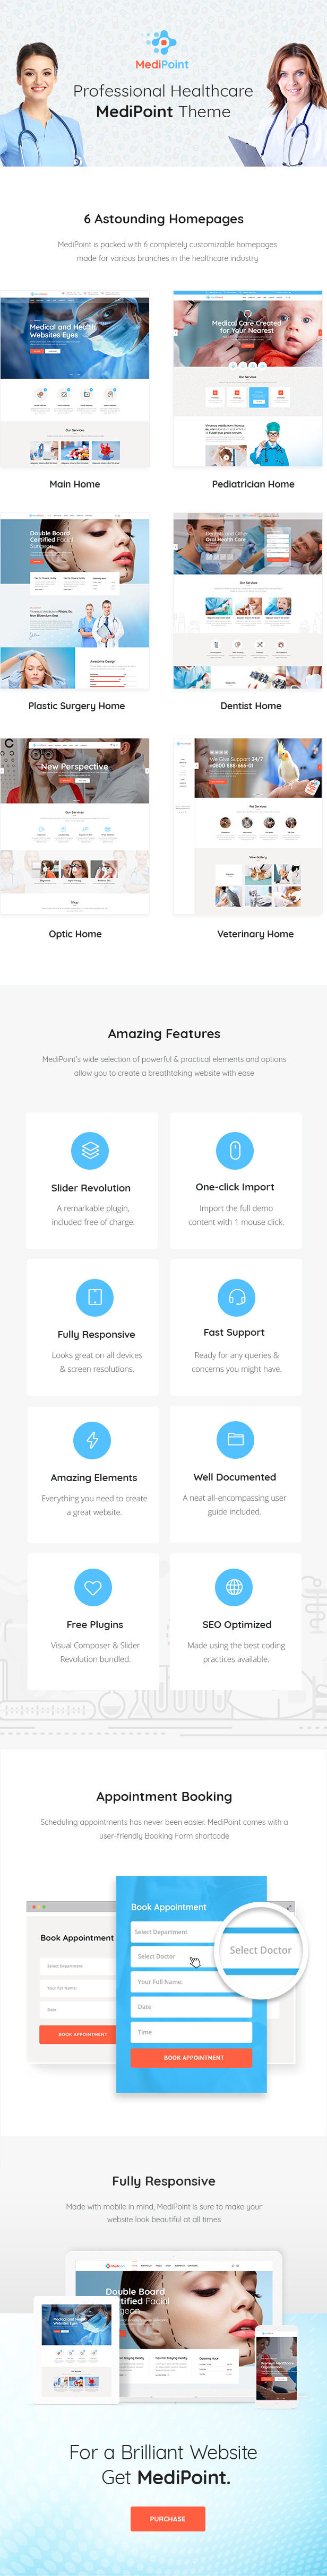 MediPoint - A Modern Medical and Health Care Theme